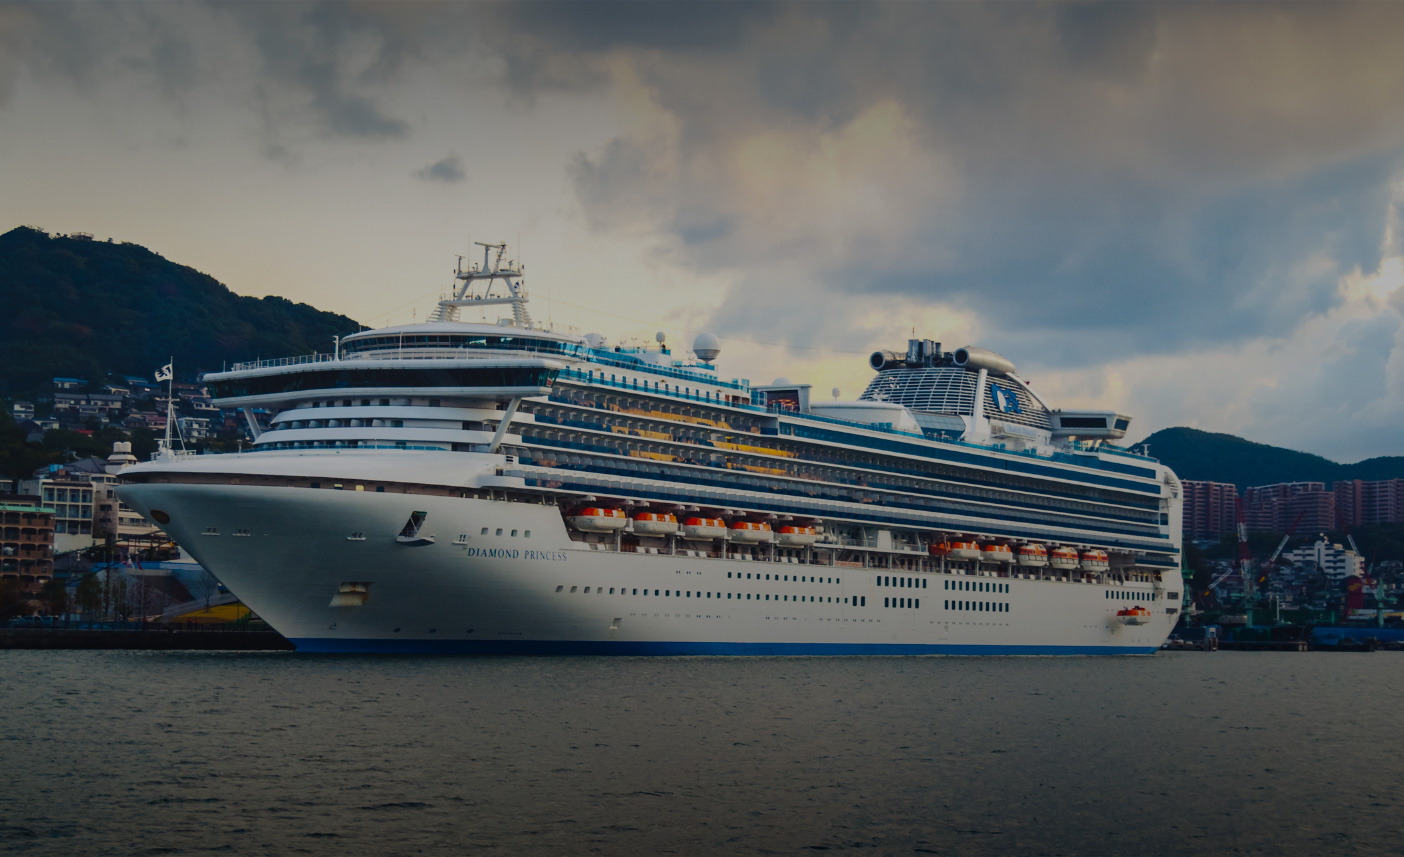 The Diamond Princess cruise ship quarantines off the cost of Japan